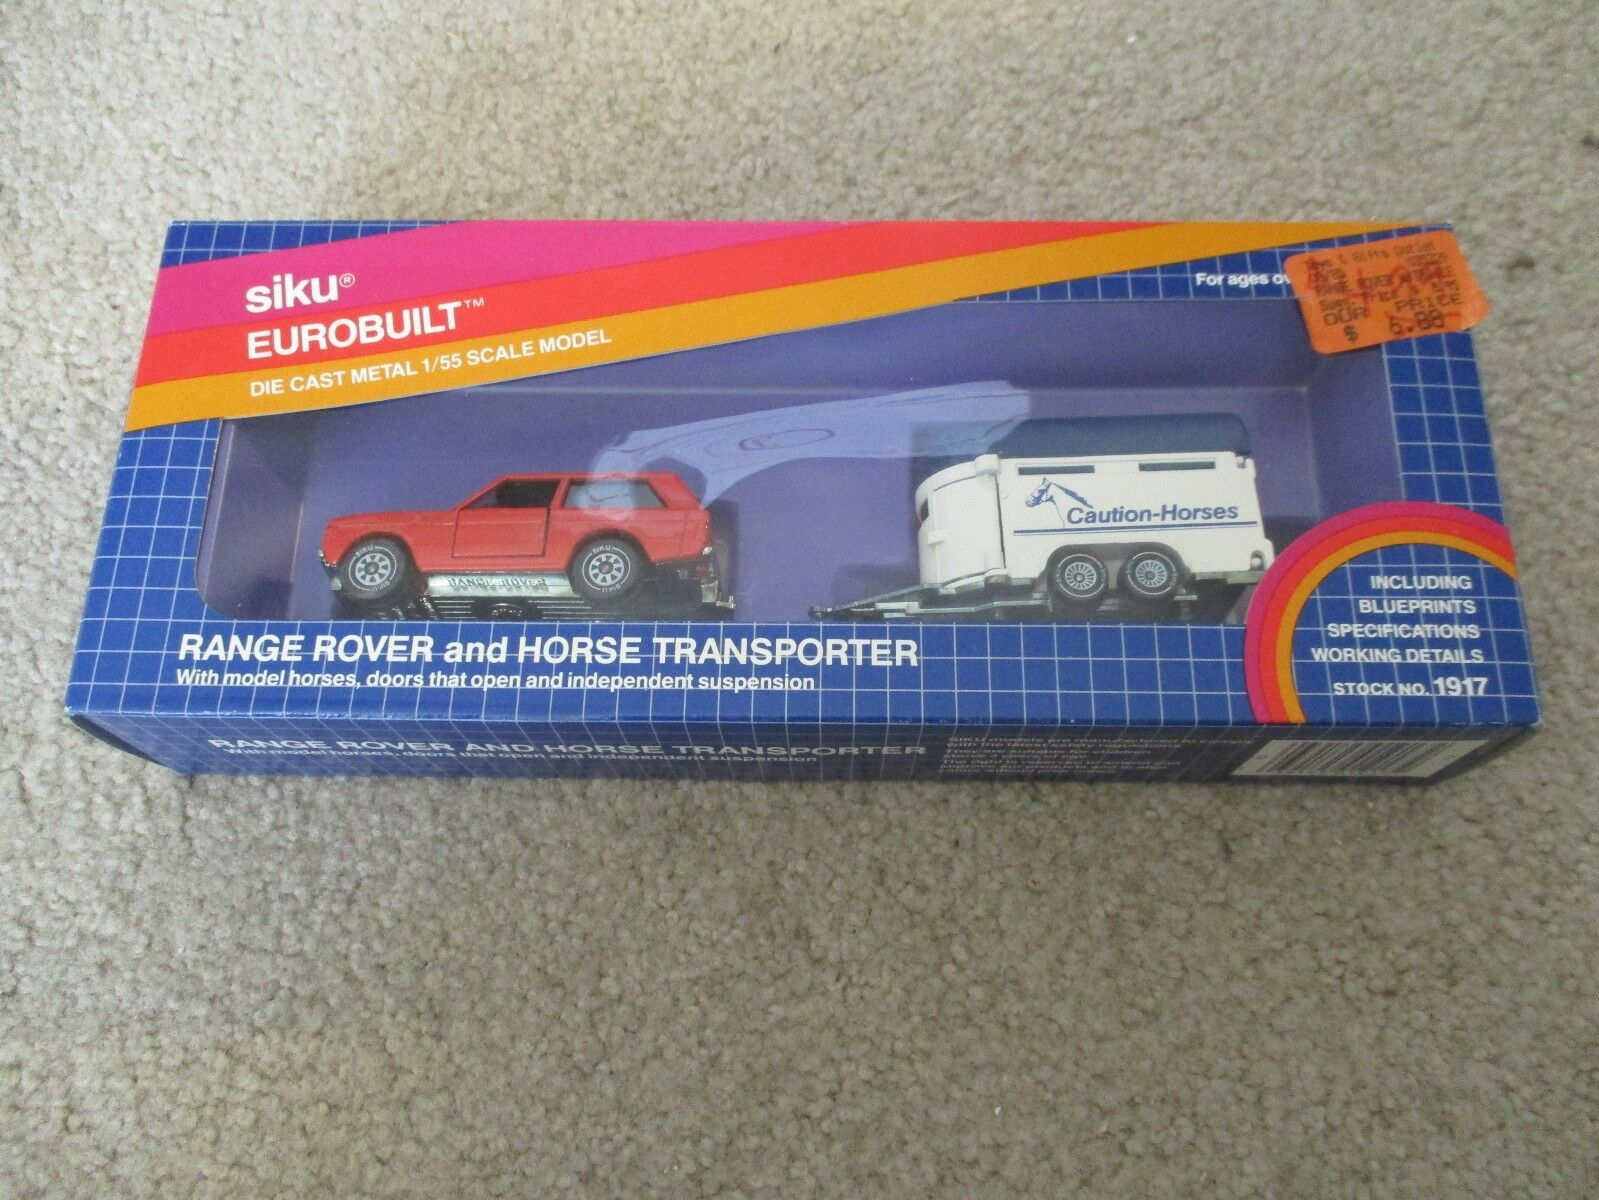 Siku Eurobuilt Range Rover And Horse Transporter 1 55 Scale  1917 Nice With Box